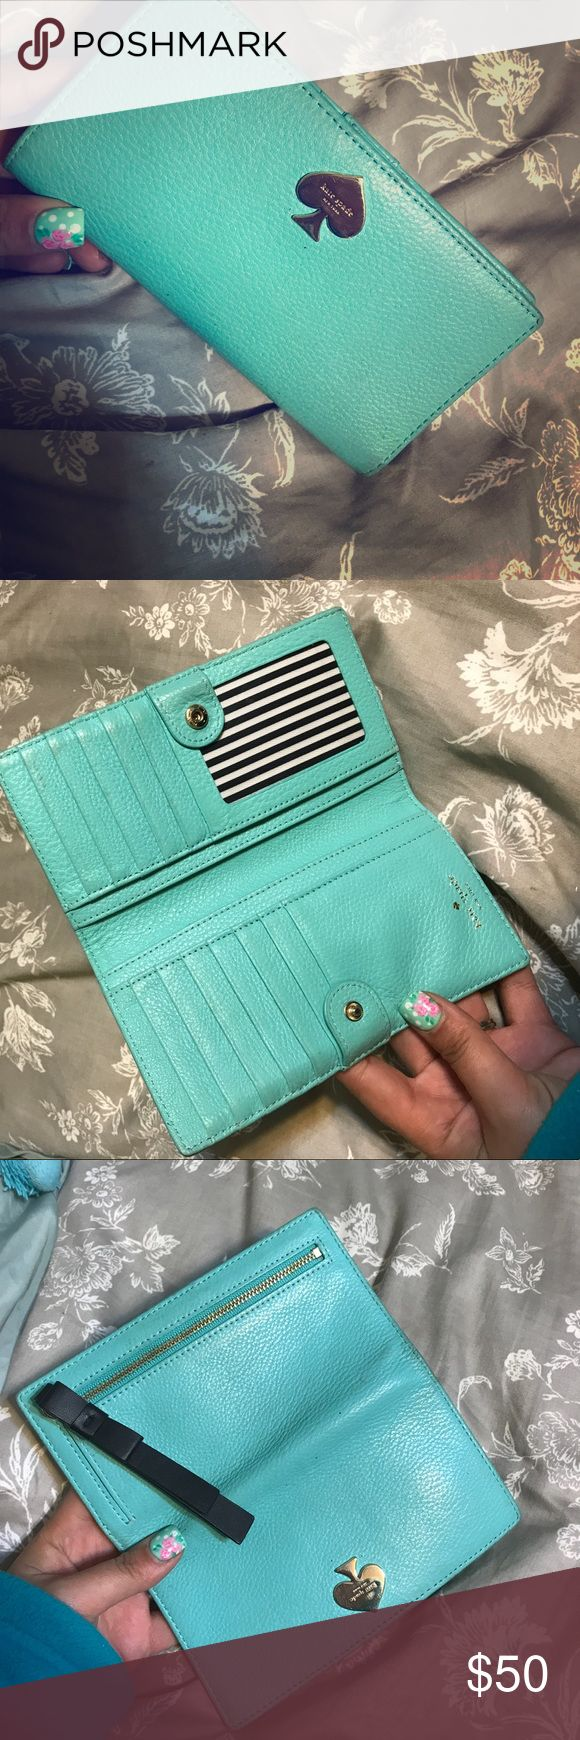 Kate spade wallet A little dirty, would clean up like new with a little leather cleaner kate spade Bags Wallets